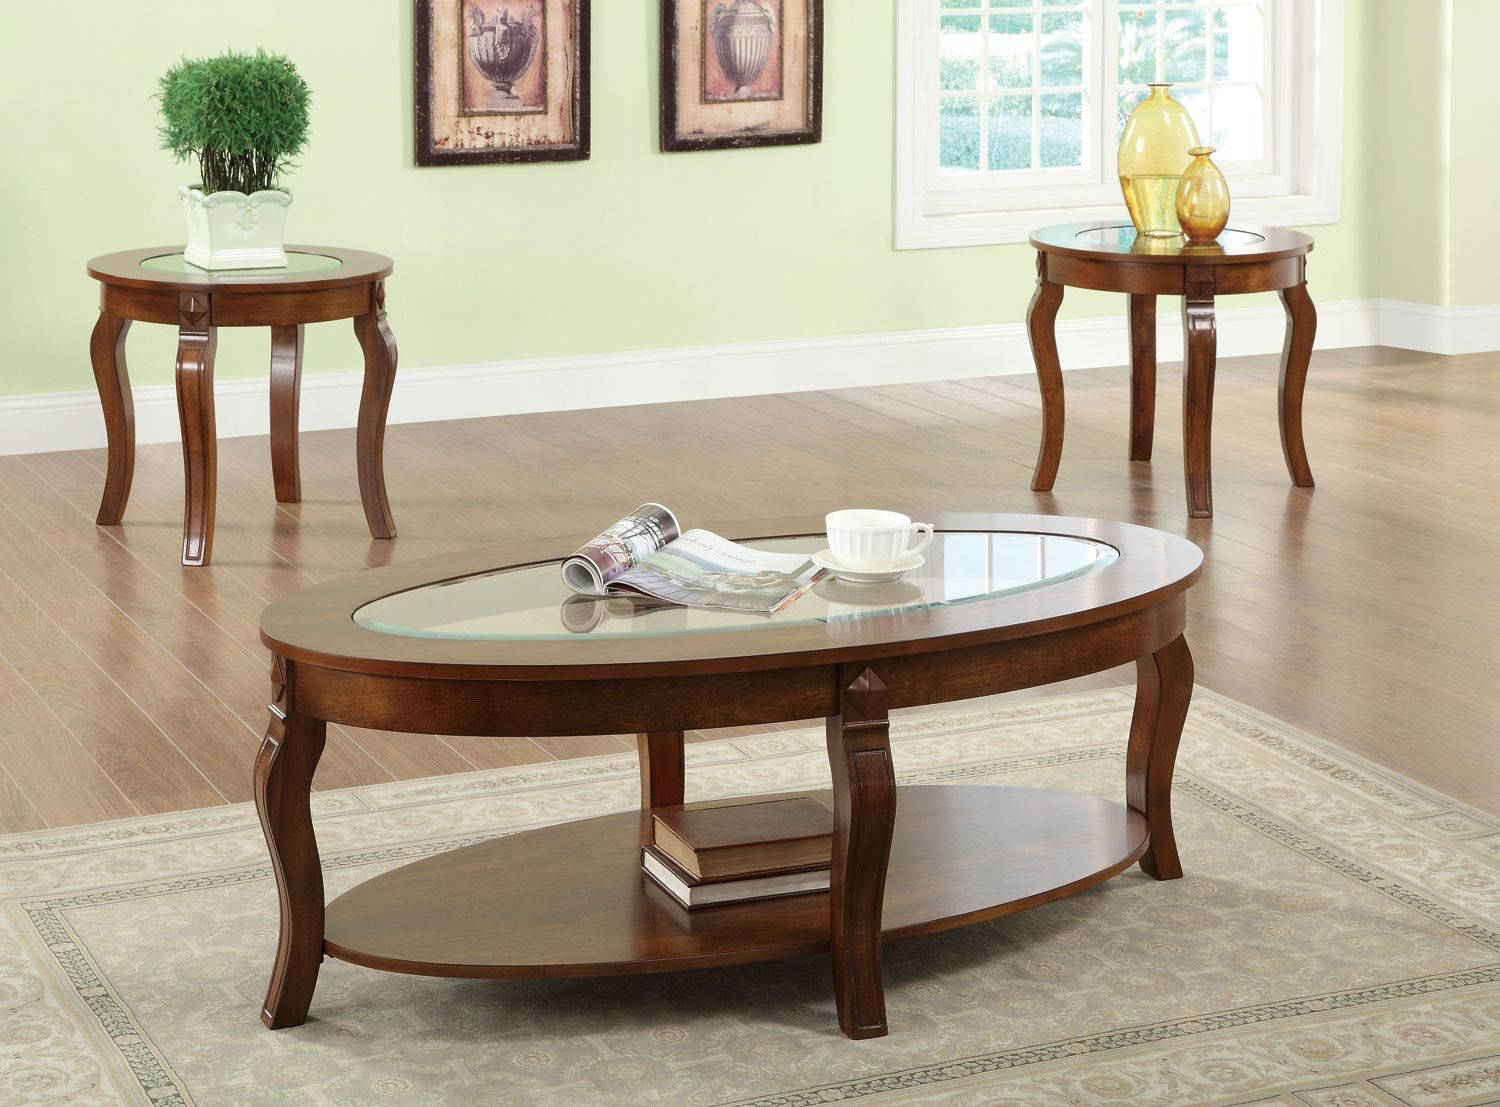 Coaster 701600 3 Pack Coffee Table Set Coffee Table Home Coffee Tables Coffee Table Setting [ 1107 x 1500 Pixel ]